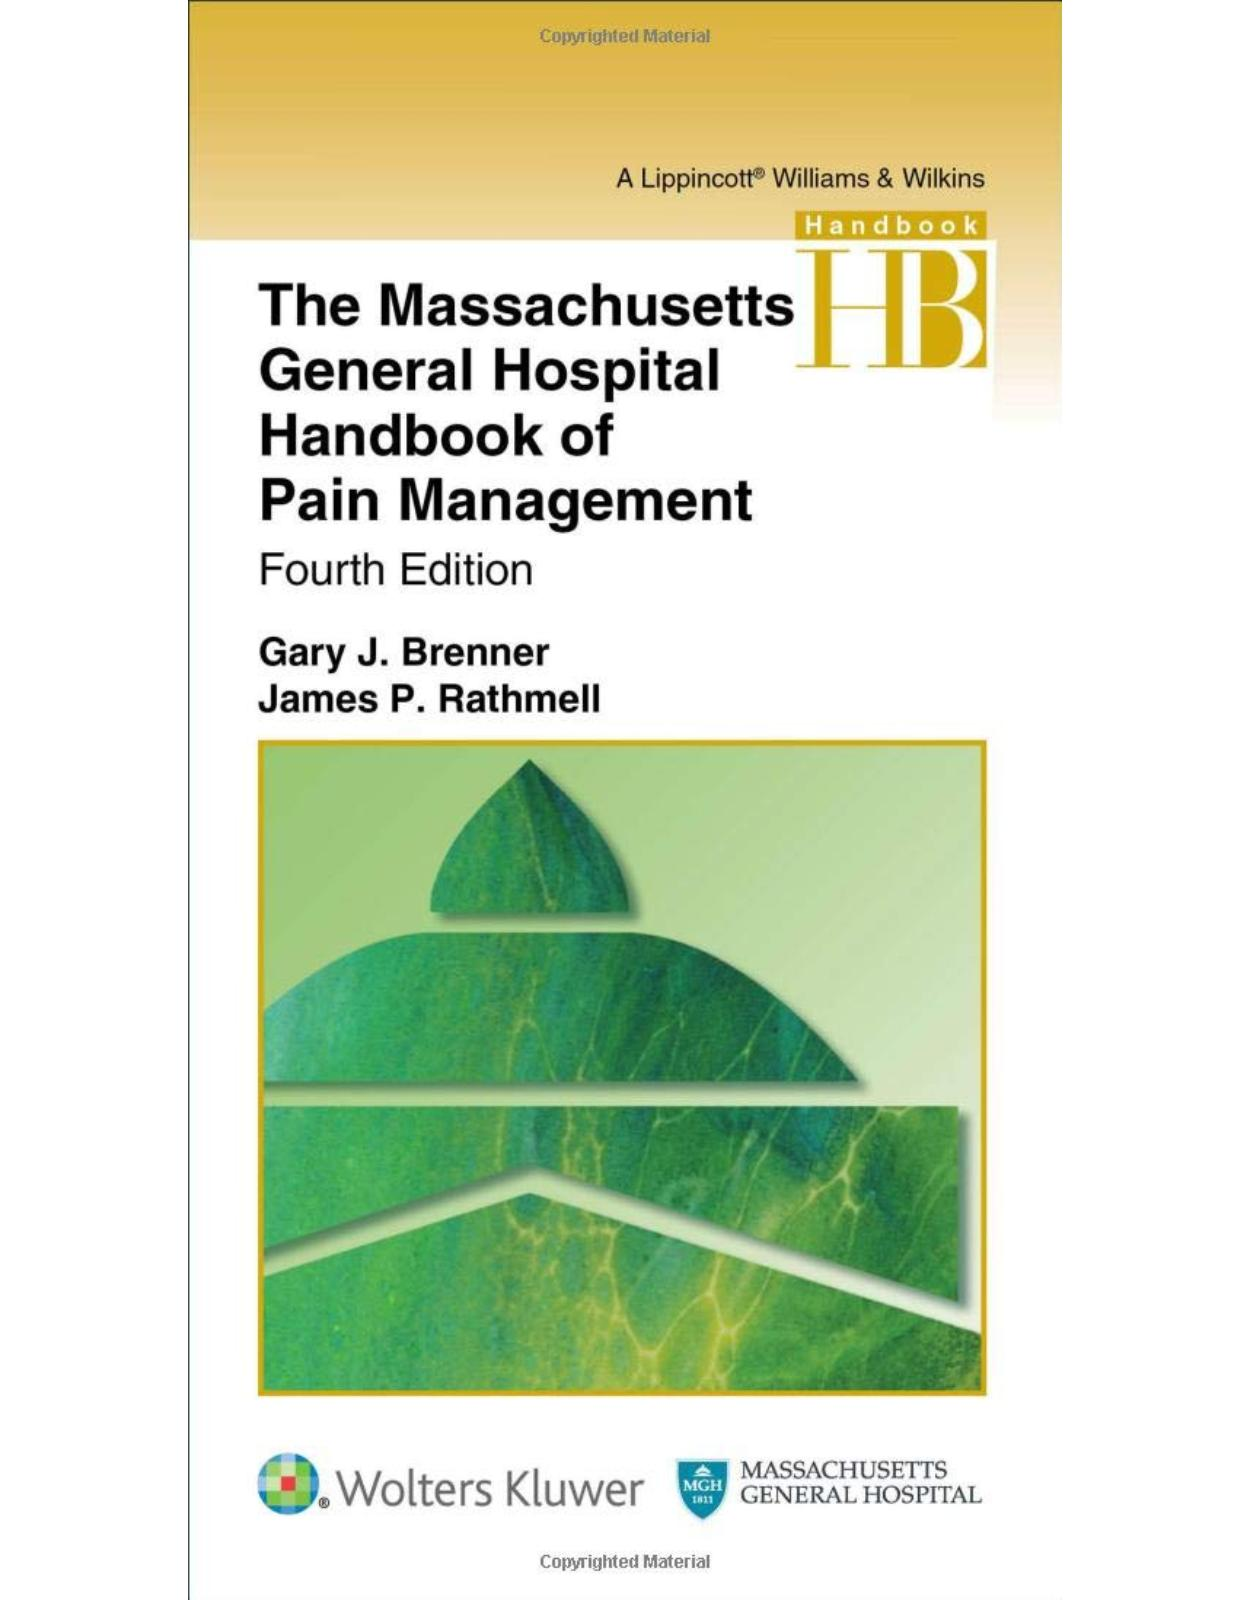 The Massachusetts General Hospital Handbook of Pain Management, Fourth edition